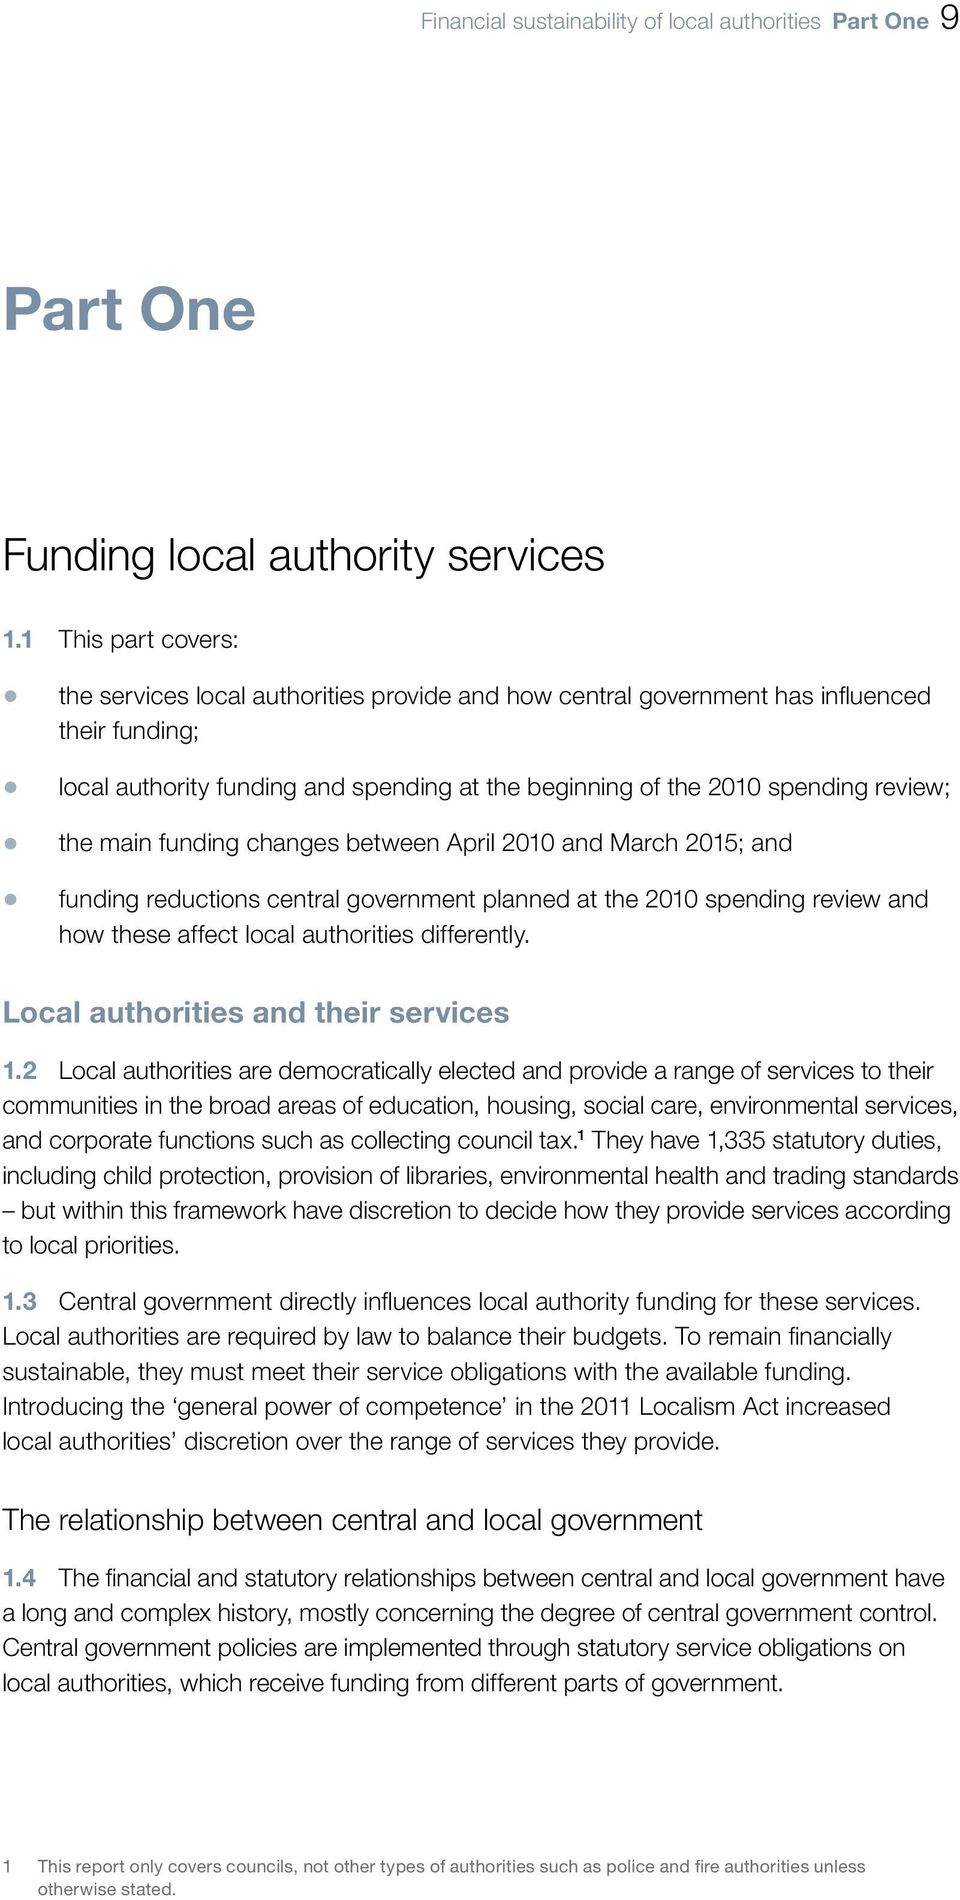 the main funding changes between April 2010 and March 2015; and funding reductions central government planned at the 2010 spending review and how these affect local authorities differently.